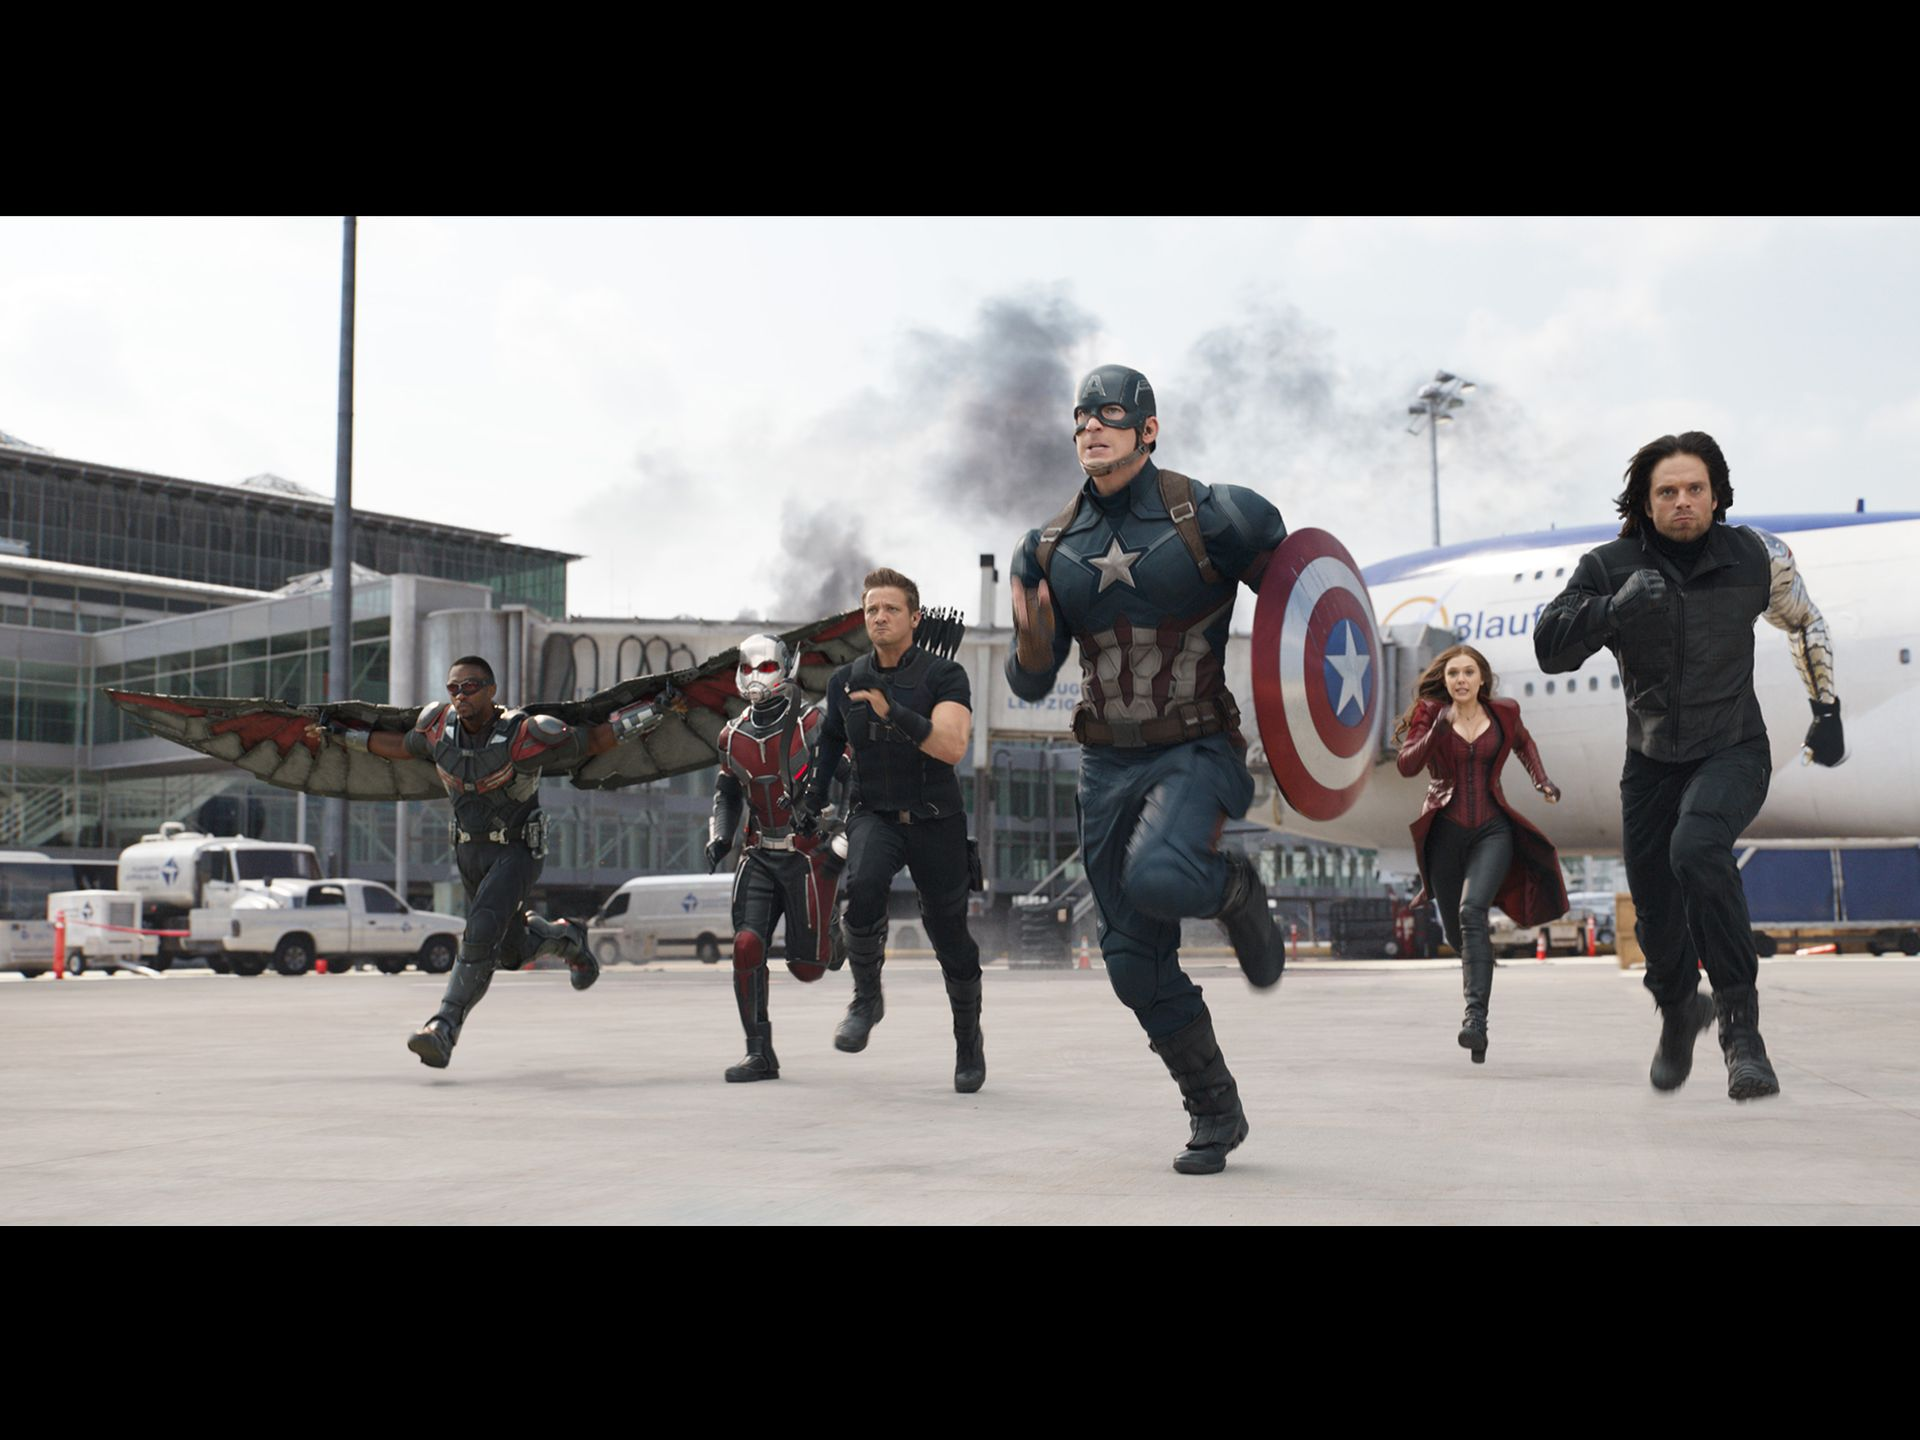 civilwar trailer team cap running in the airport